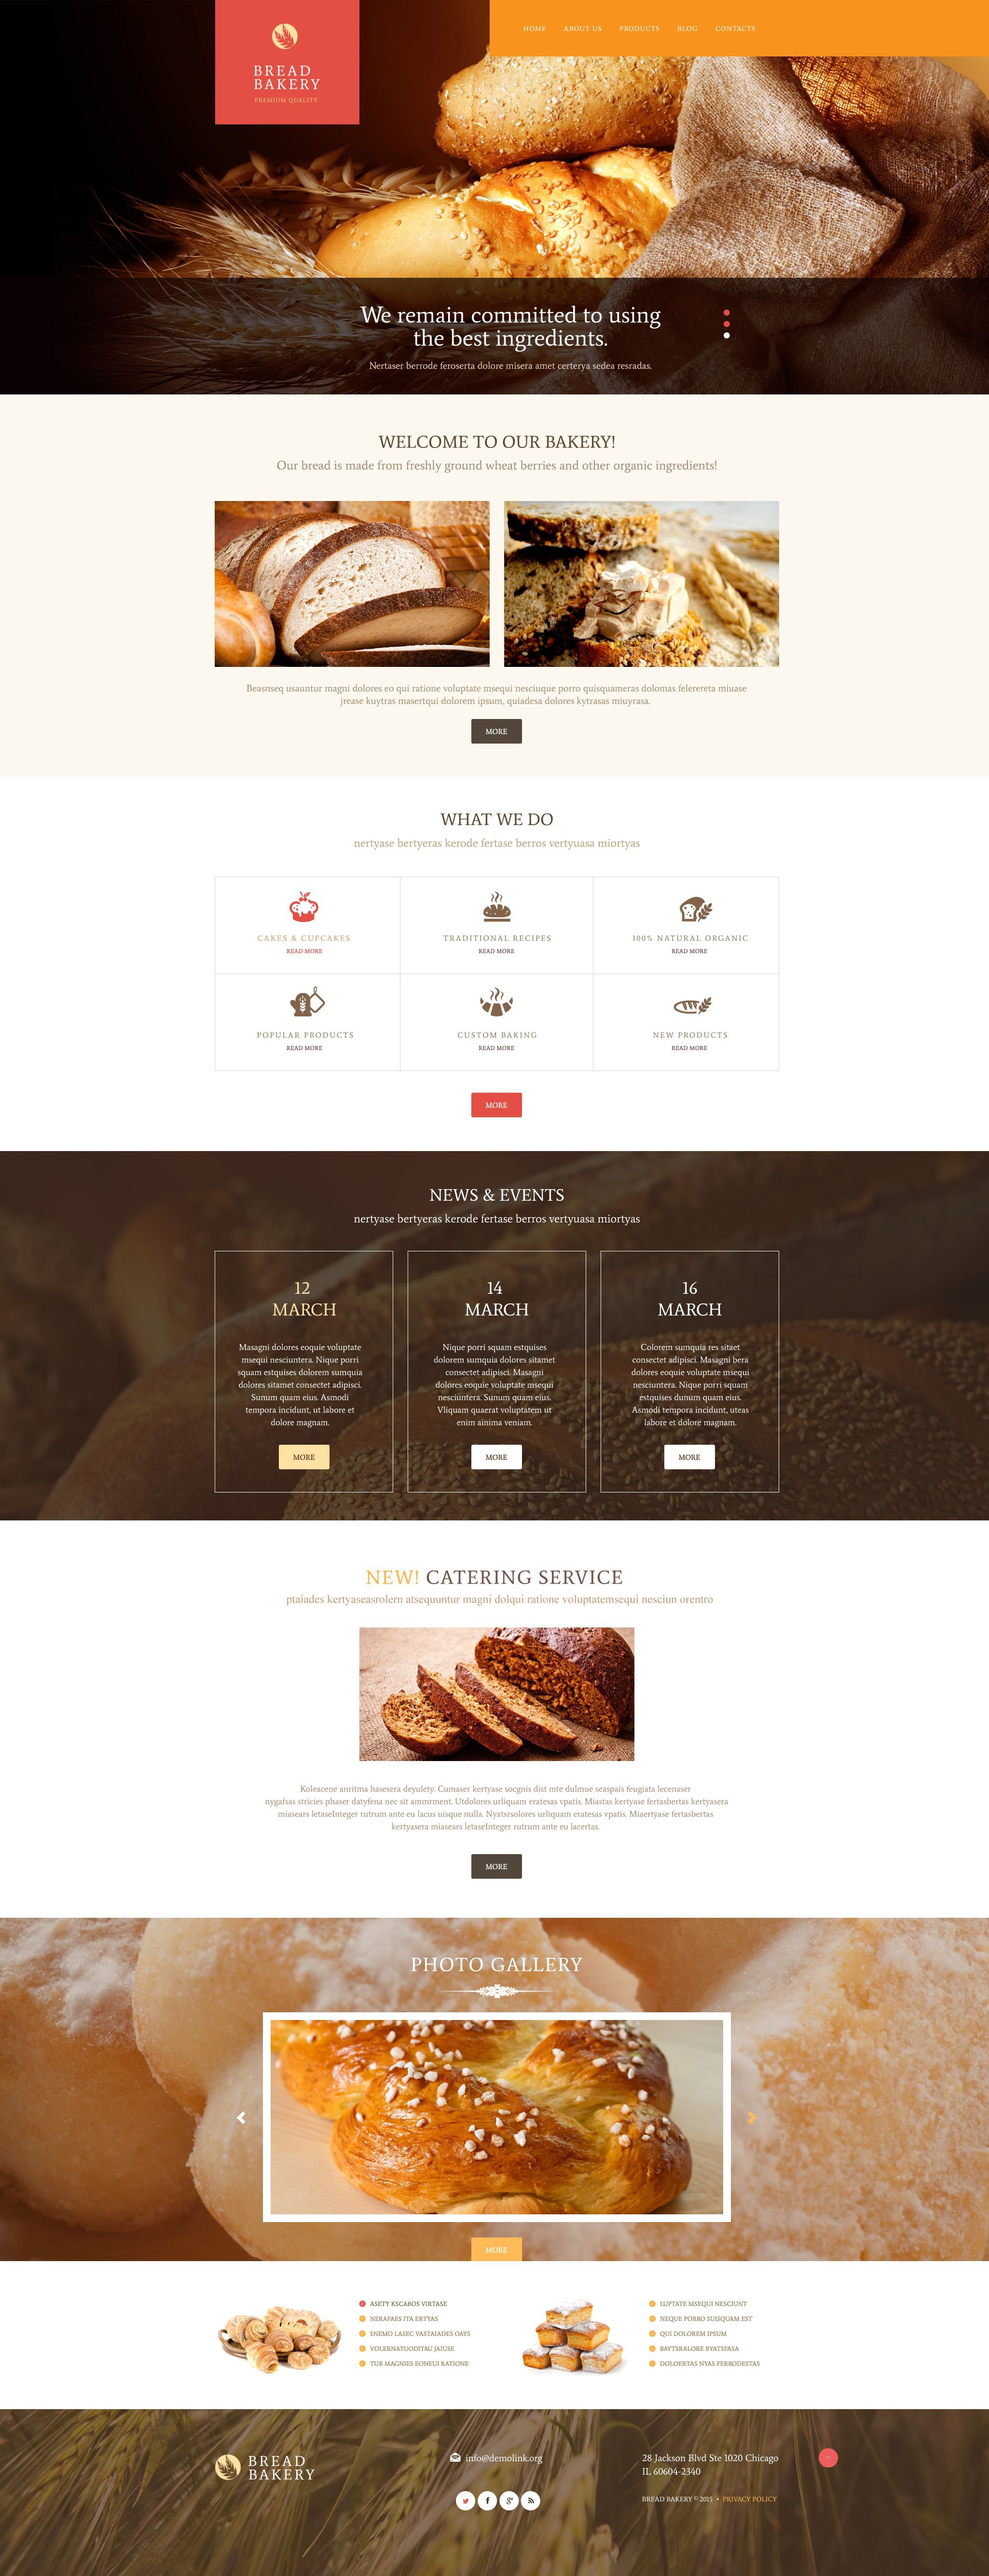 The Bread Bakery WordPress Design 54000, one of the best WordPress themes of its kind (cafe and restaurant, most popular), also known as bread bakery WordPress template, products WordPress template, chocolate WordPress template, cake WordPress template, biscuit WordPress template, filling WordPress template, tasty WordPress template, delicious WordPress template, wedding WordPress template, celebration WordPress template, birthday WordPress template, fruits WordPress template, sweets WordPress template, cookies WordPress template, specials WordPress template, receipts WordPress template, pastry WordPress template, fancy WordPress template, tarts WordPress template, custard WordPress template, cream WordPress template, cookery WordPress template, experts WordPress template, masters WordPress template, services WordPress template, order WordPress template, quotes WordPress template, delivery WordPress template, staff and related with bread bakery, products, chocolate, cake, biscuit, filling, tasty, delicious, wedding, celebration, birthday, fruits, sweets, cookies, specials, receipts, pastry, fancy, tarts, custard, cream, cookery, experts, masters, services, order, quotes, delivery, staff, etc.